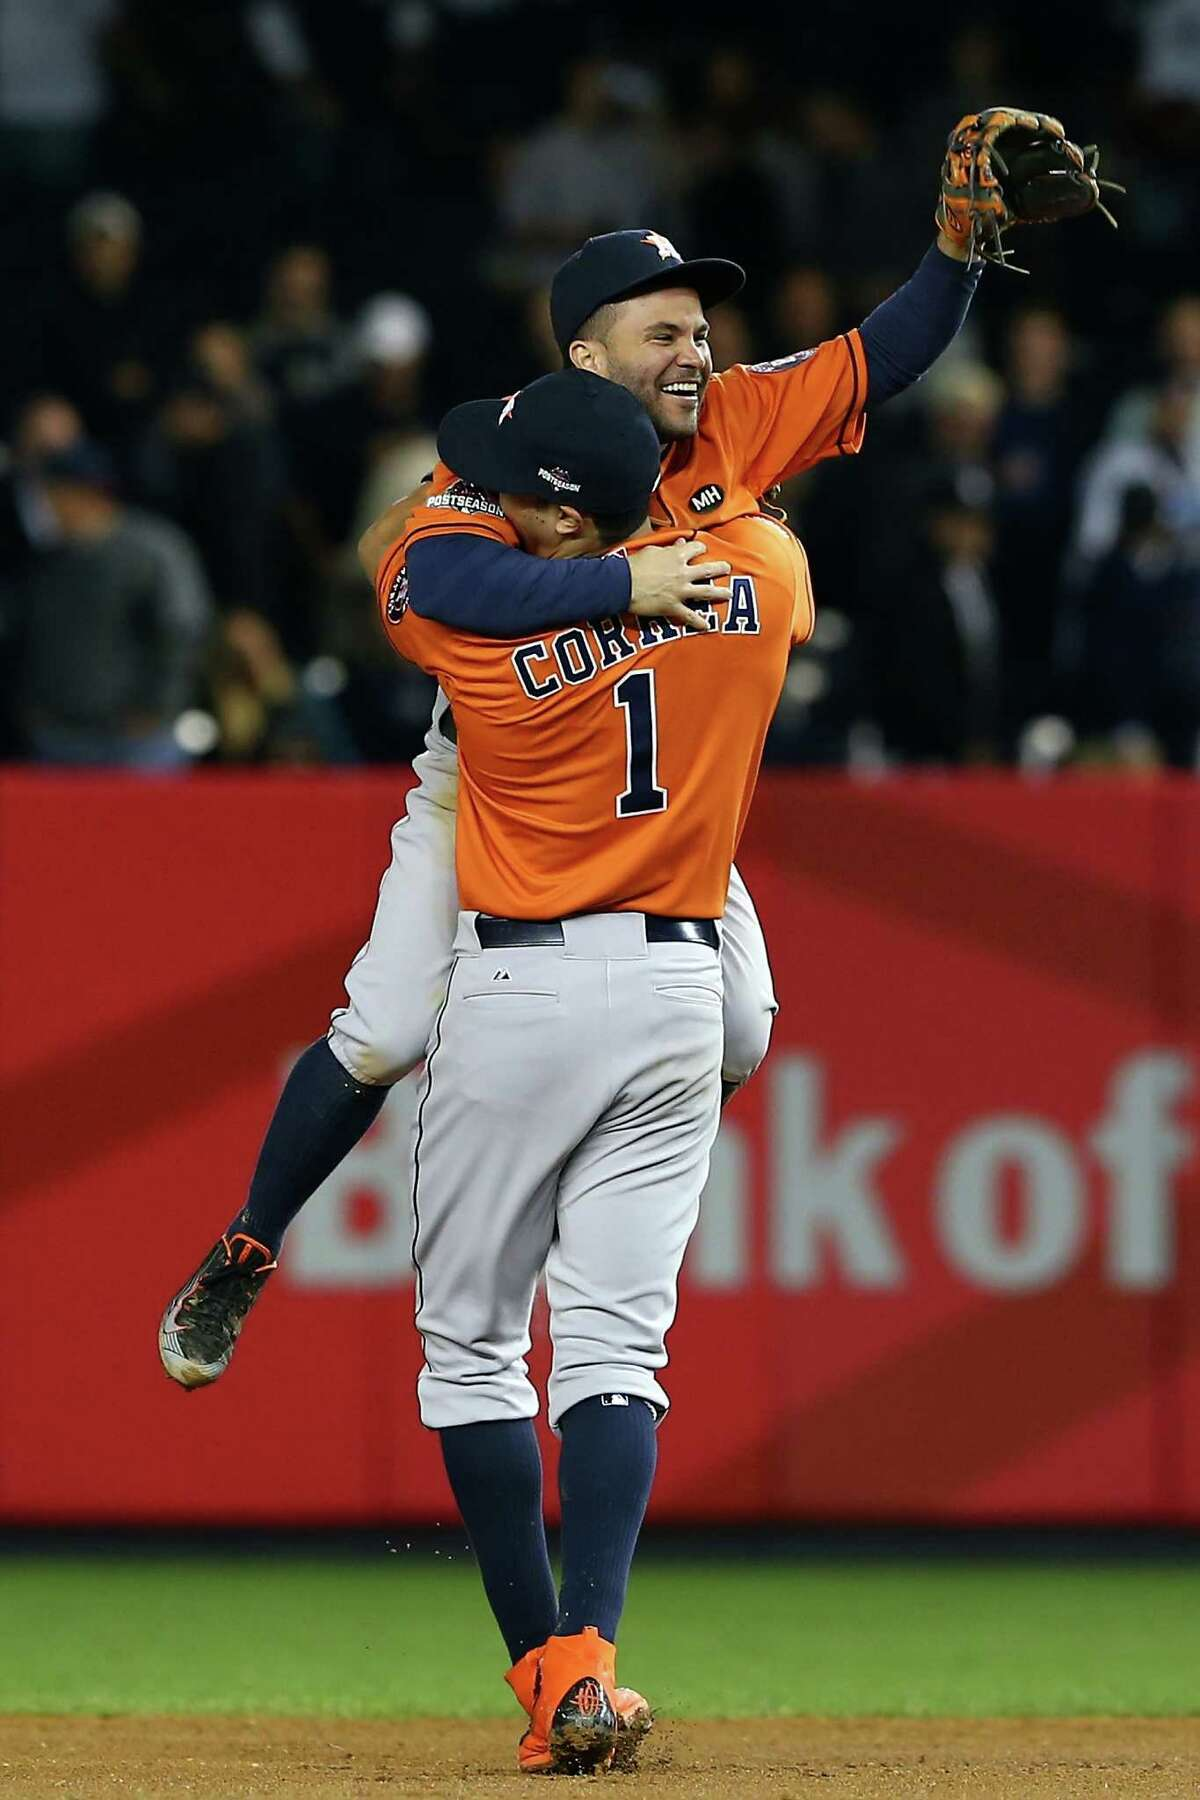 NEW YORK, NY - OCTOBER 06: Jose Altuve #27 and Carlos Correa #1 of the Houston Astros celebrate defeating the New York Yankees in the American League Wild Card Game at Yankee Stadium on October 6, 2015 in New York City. The Astros defeated the Yankees with a score of 3 to 0. (Photo by Elsa/Getty Images)